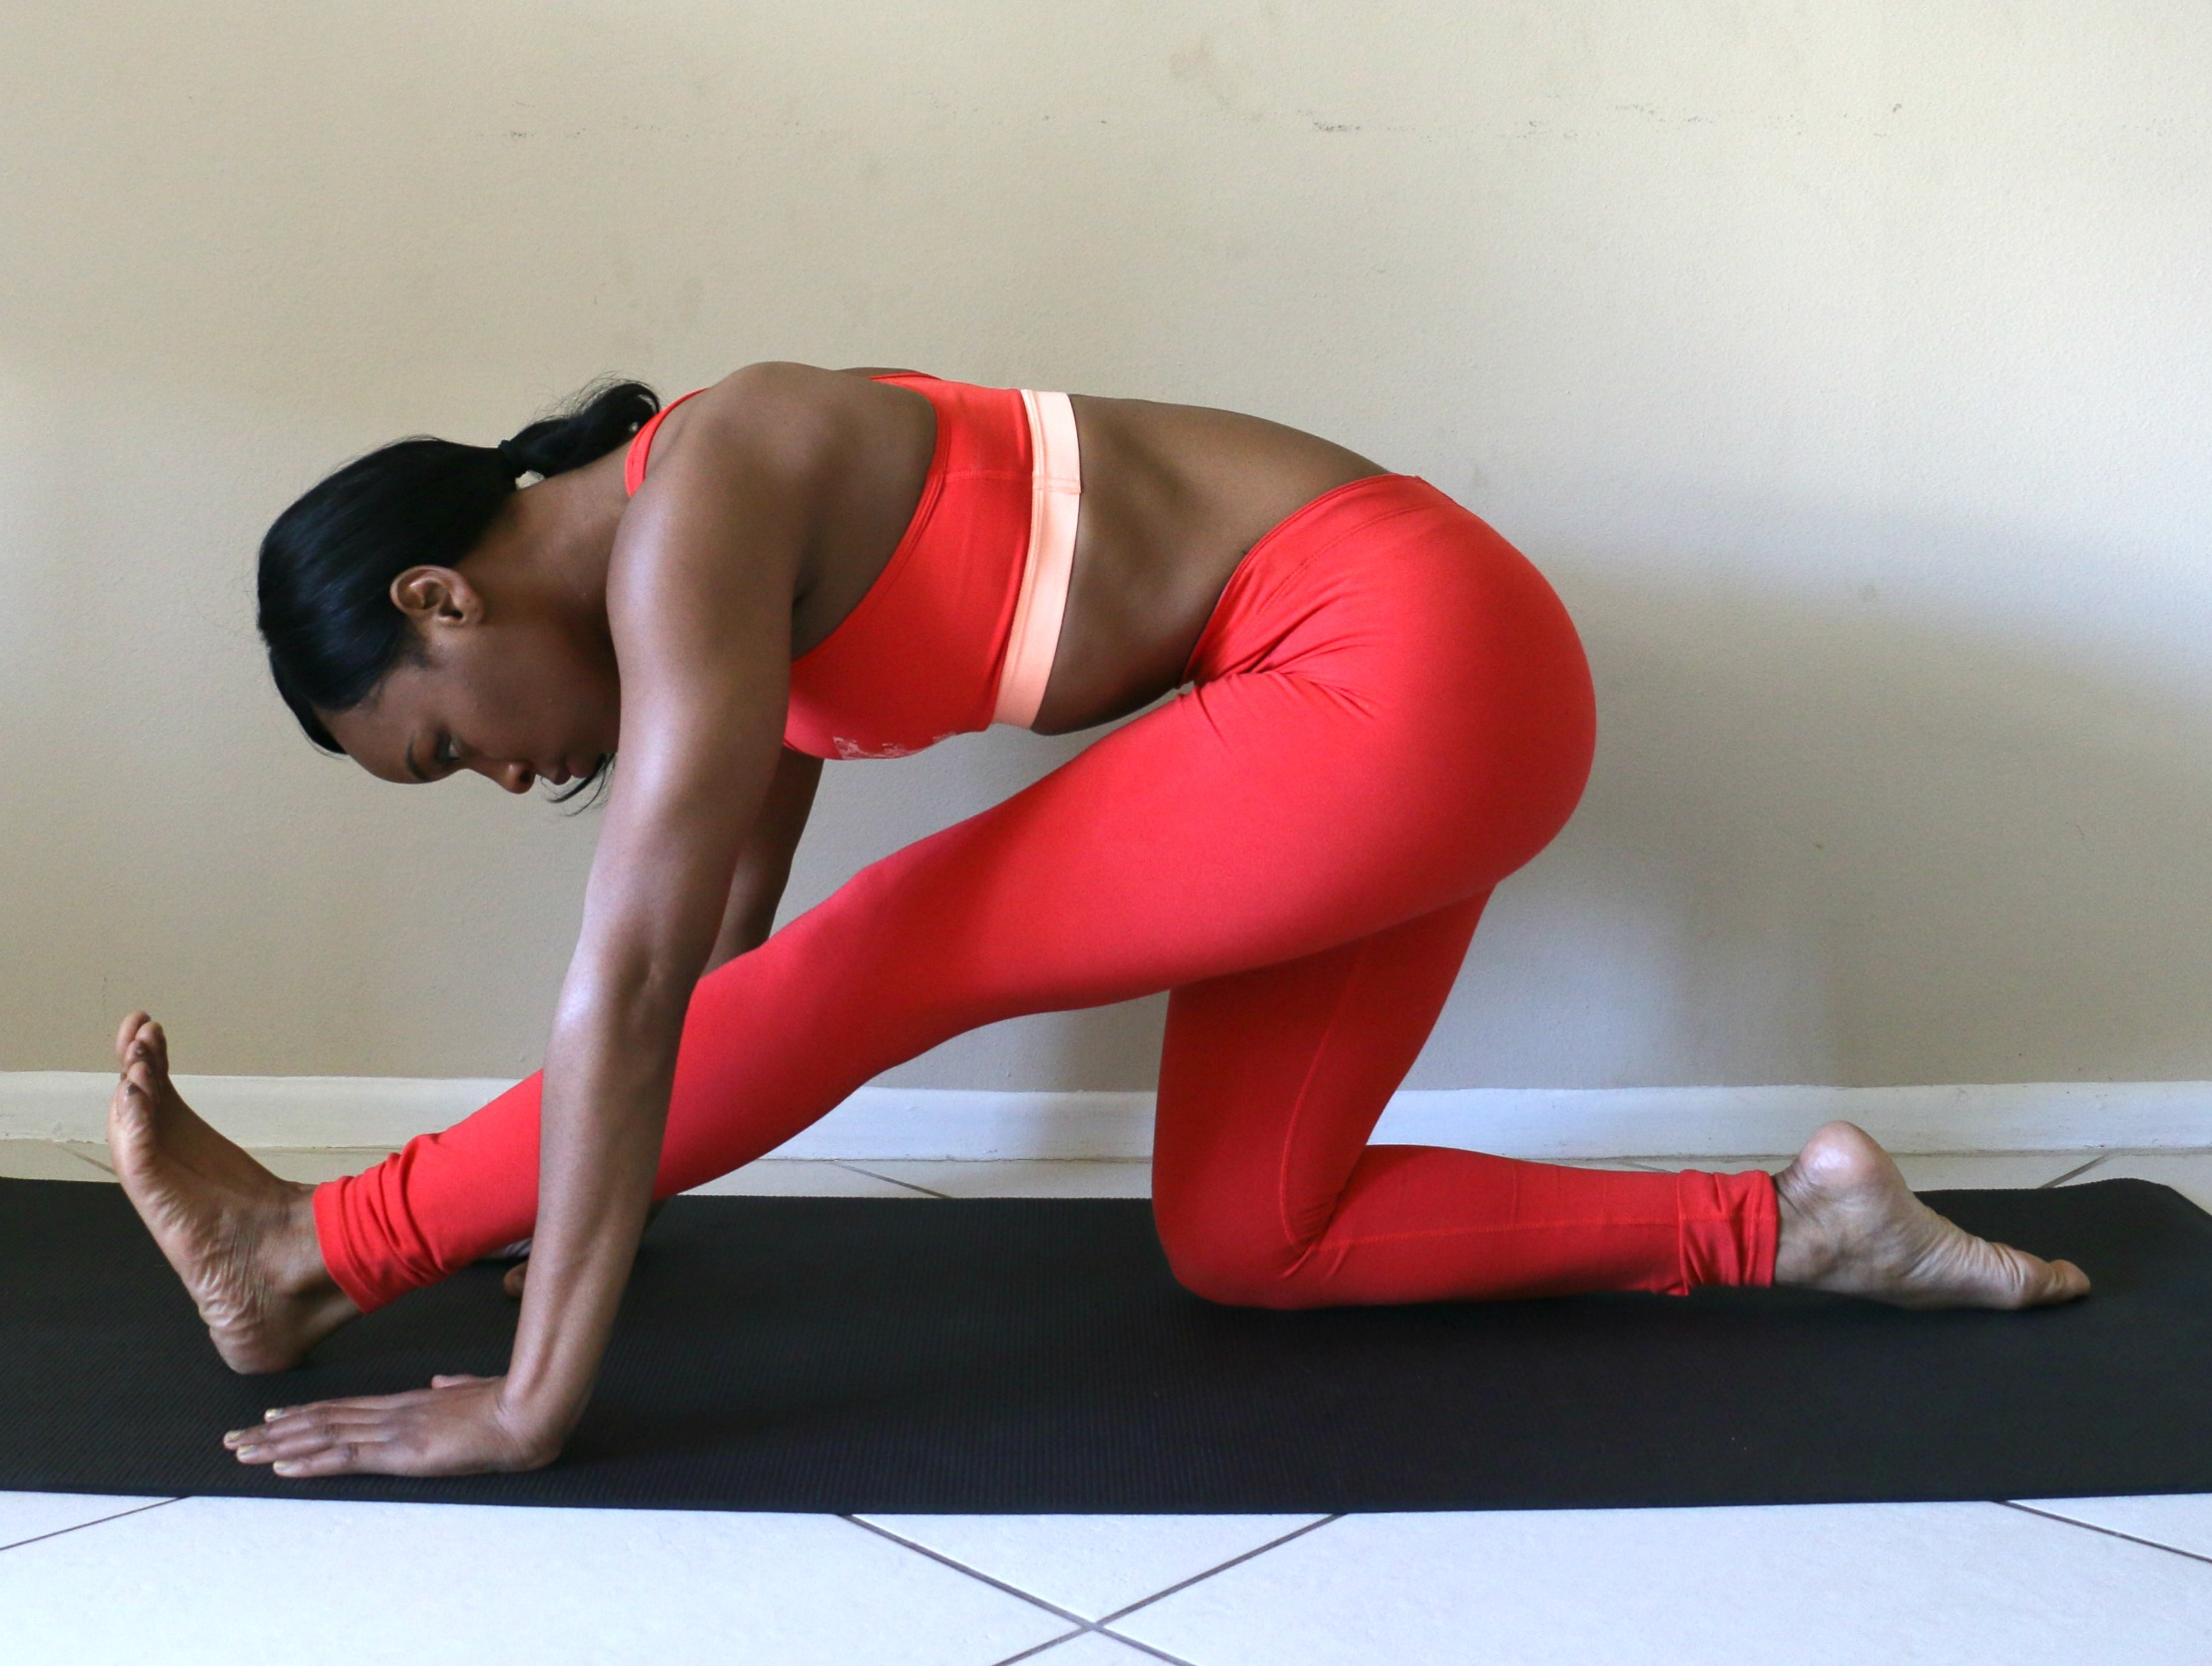 half-monkey-pose-half-split-yoga-pose-to-help-the-splits-how-to-beauty-and-the-beat-blog